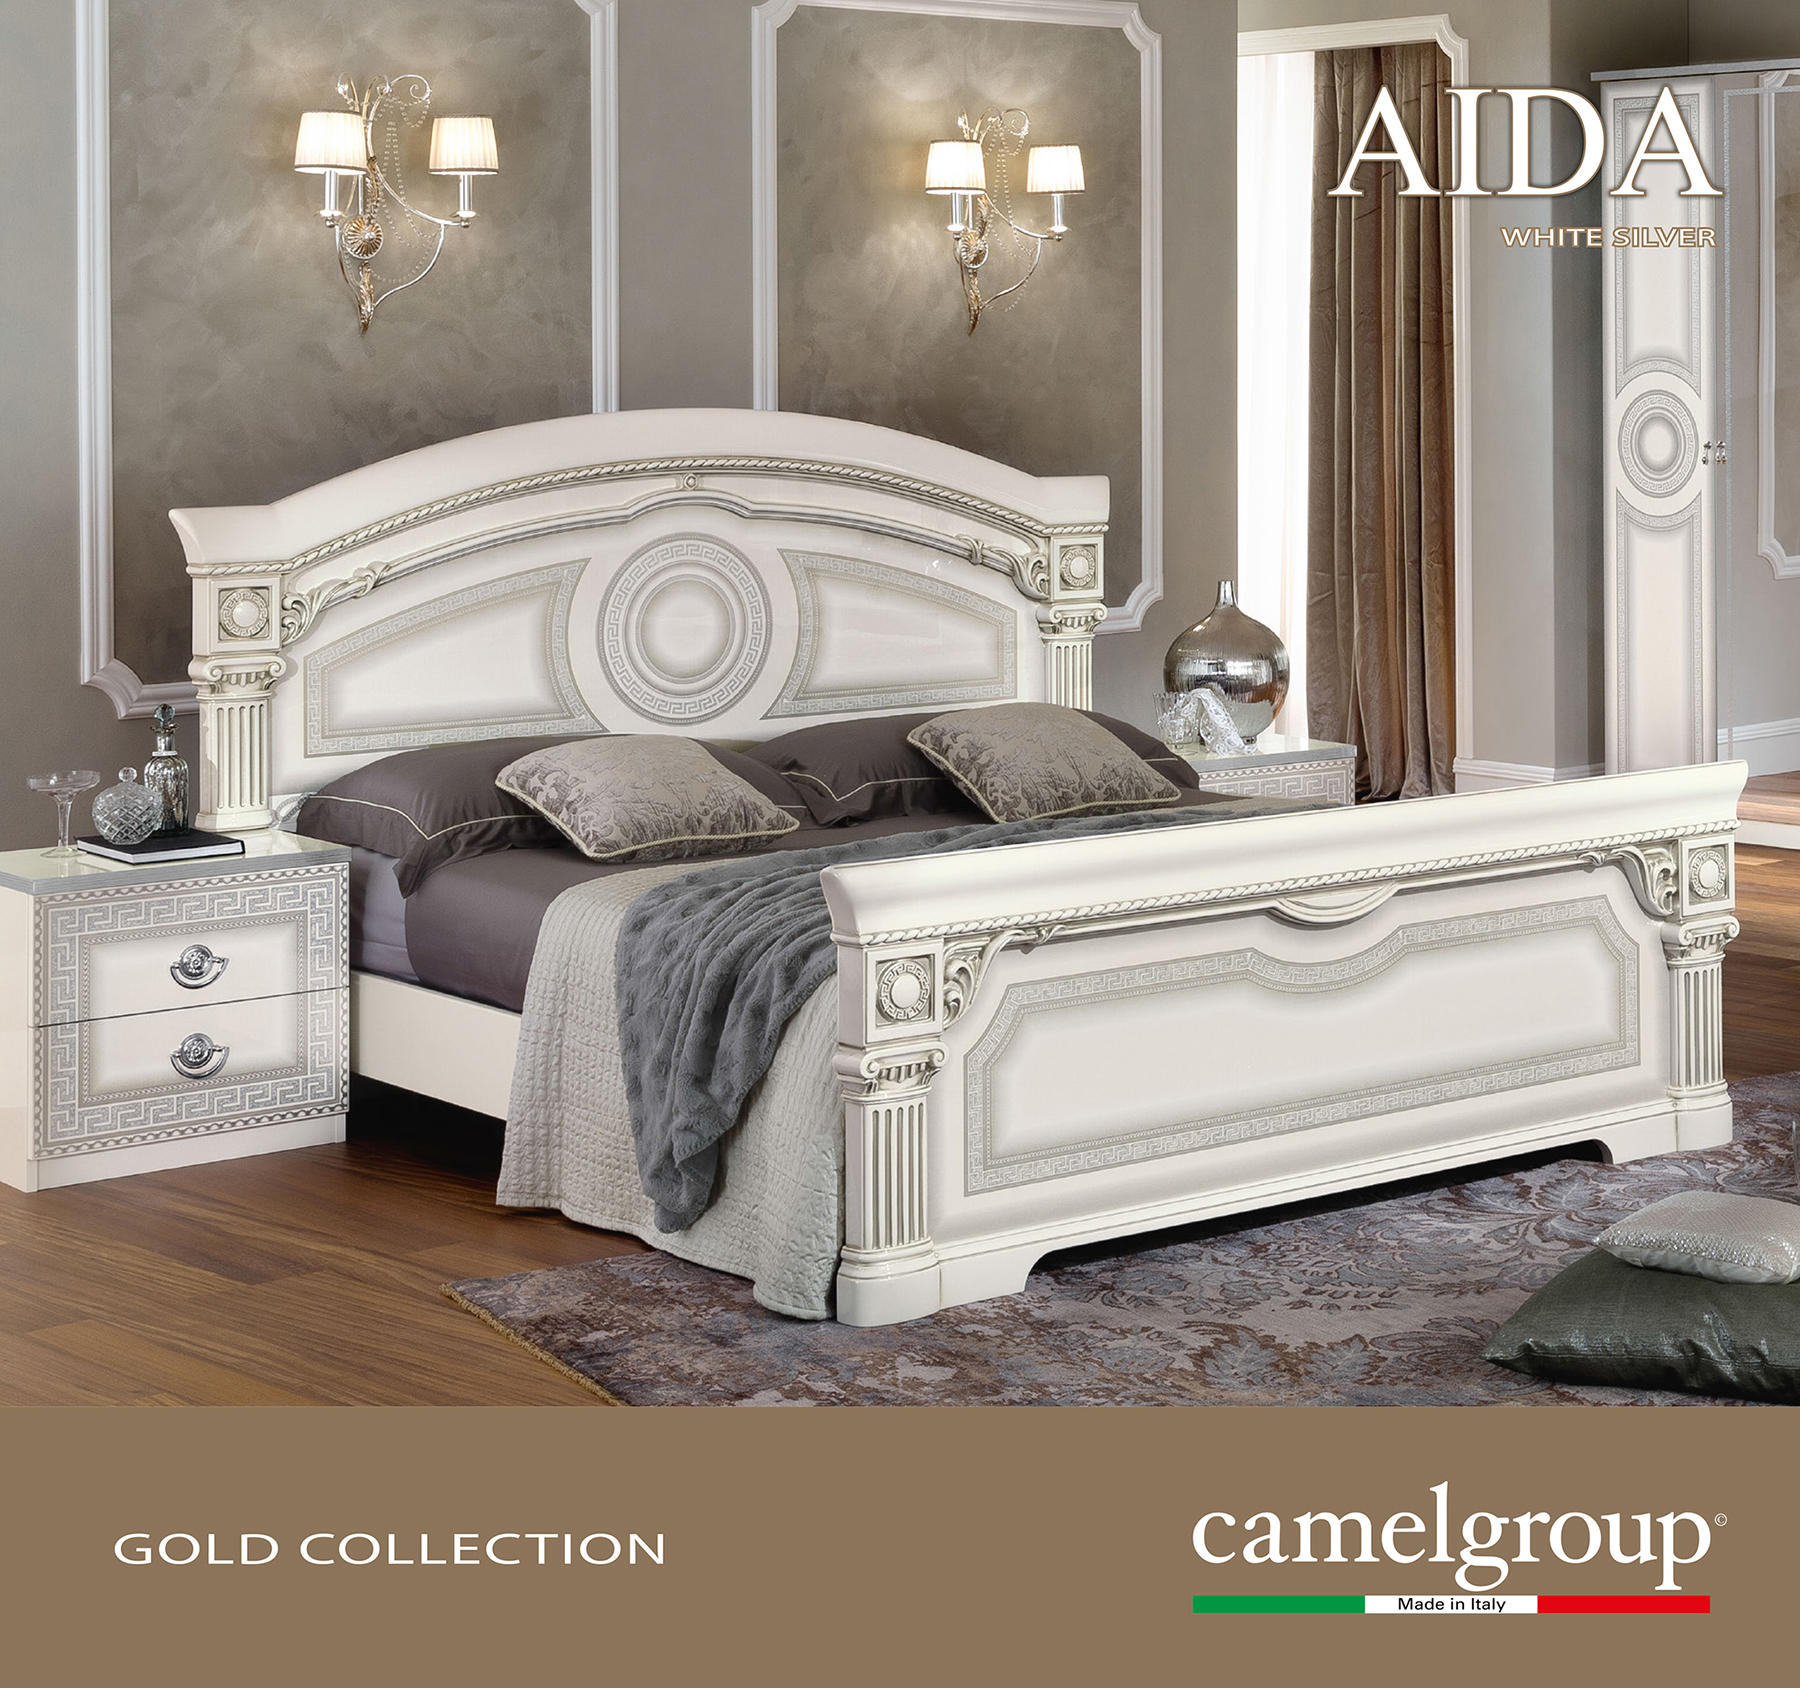 Aida White w Silver Camelgroup Italy Classic Bedrooms Bedroom